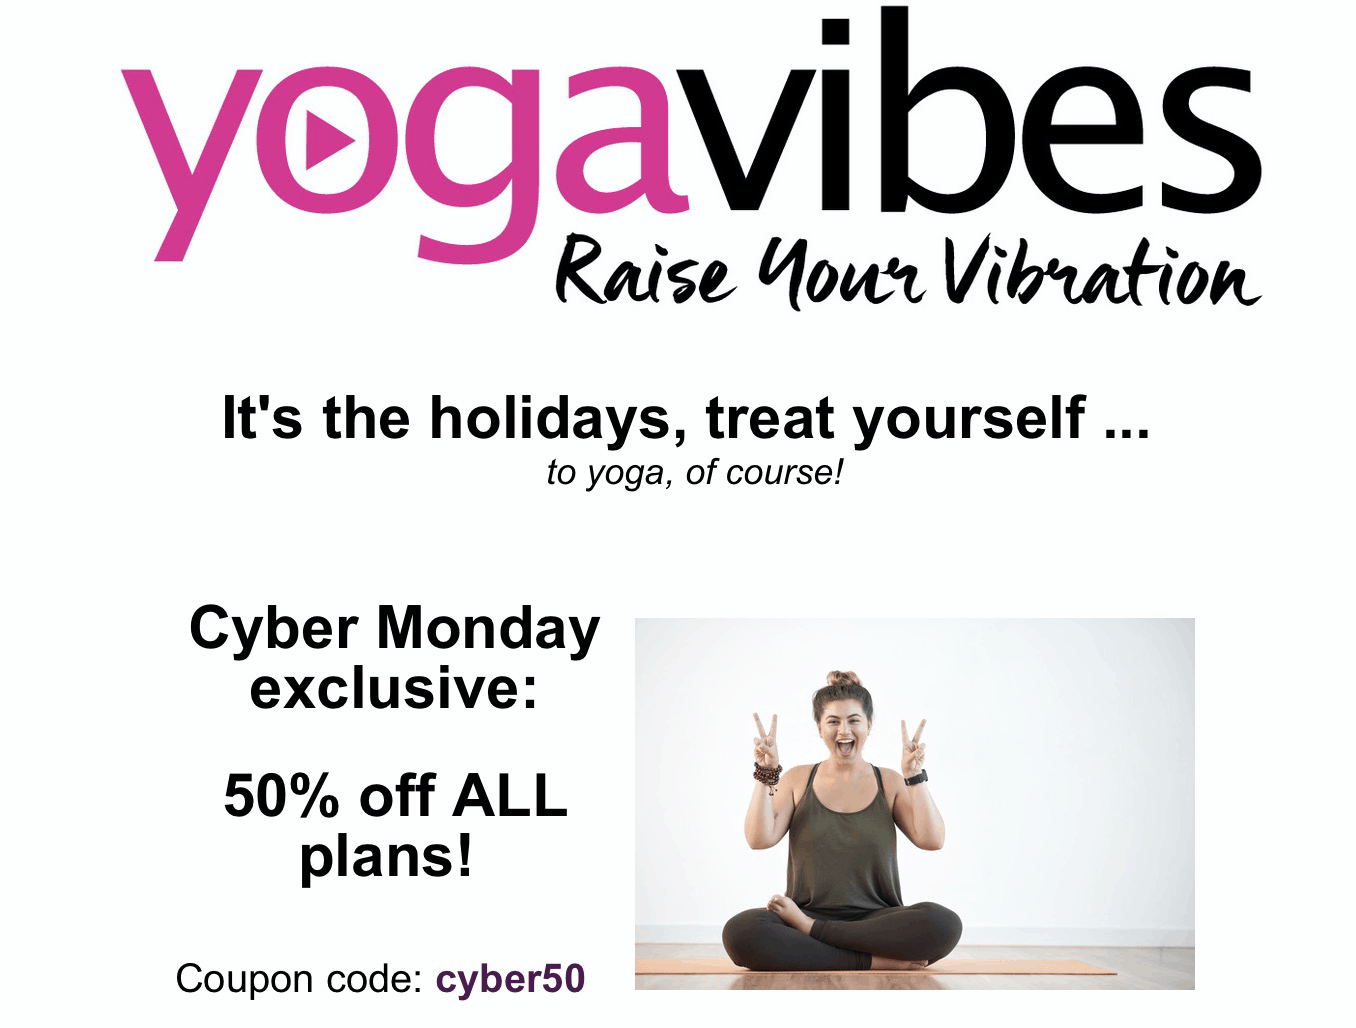 YogaVibes Cyber Monday 2019 Coupon: Get 50% Off!